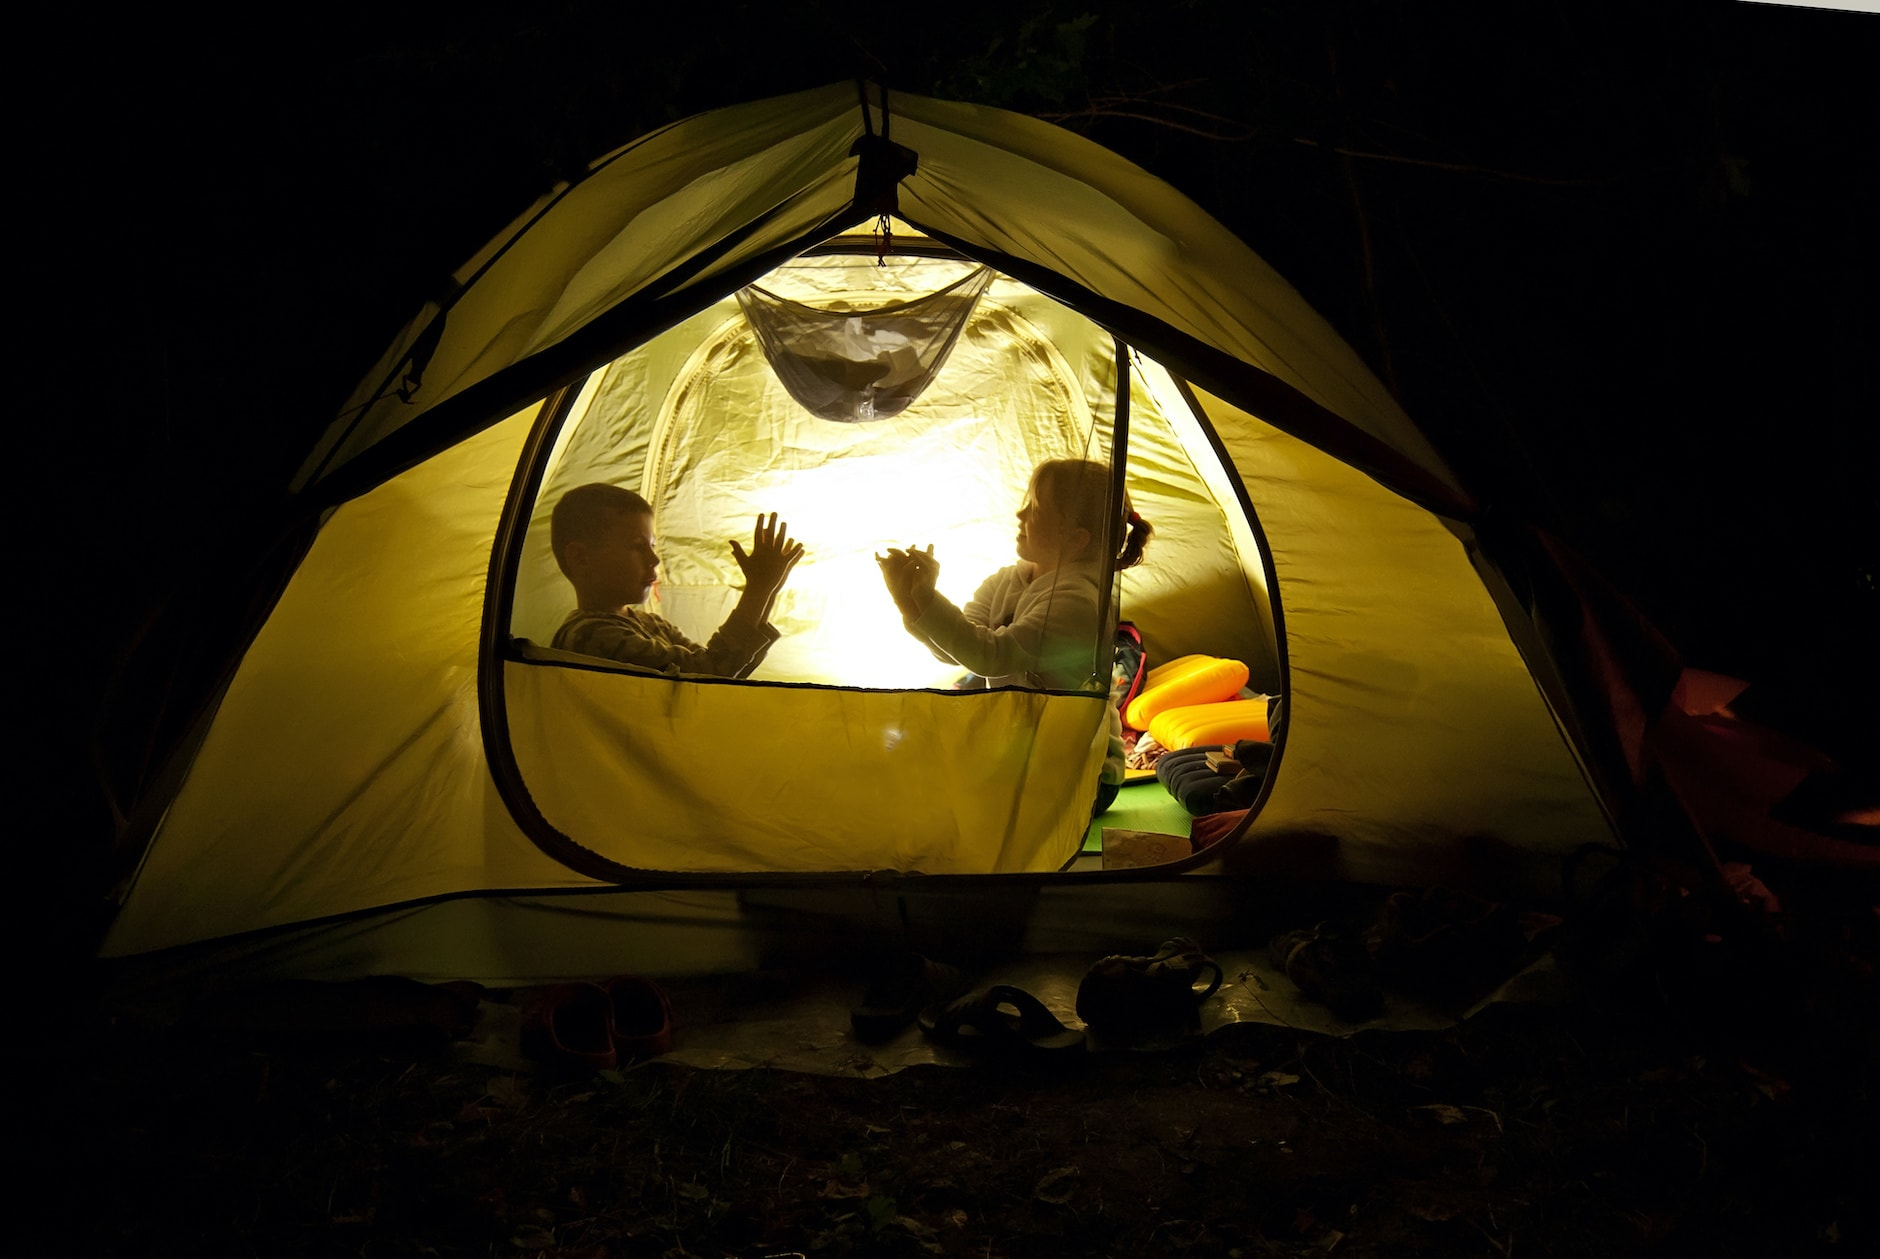 two kids camping out in a yellow tent at night